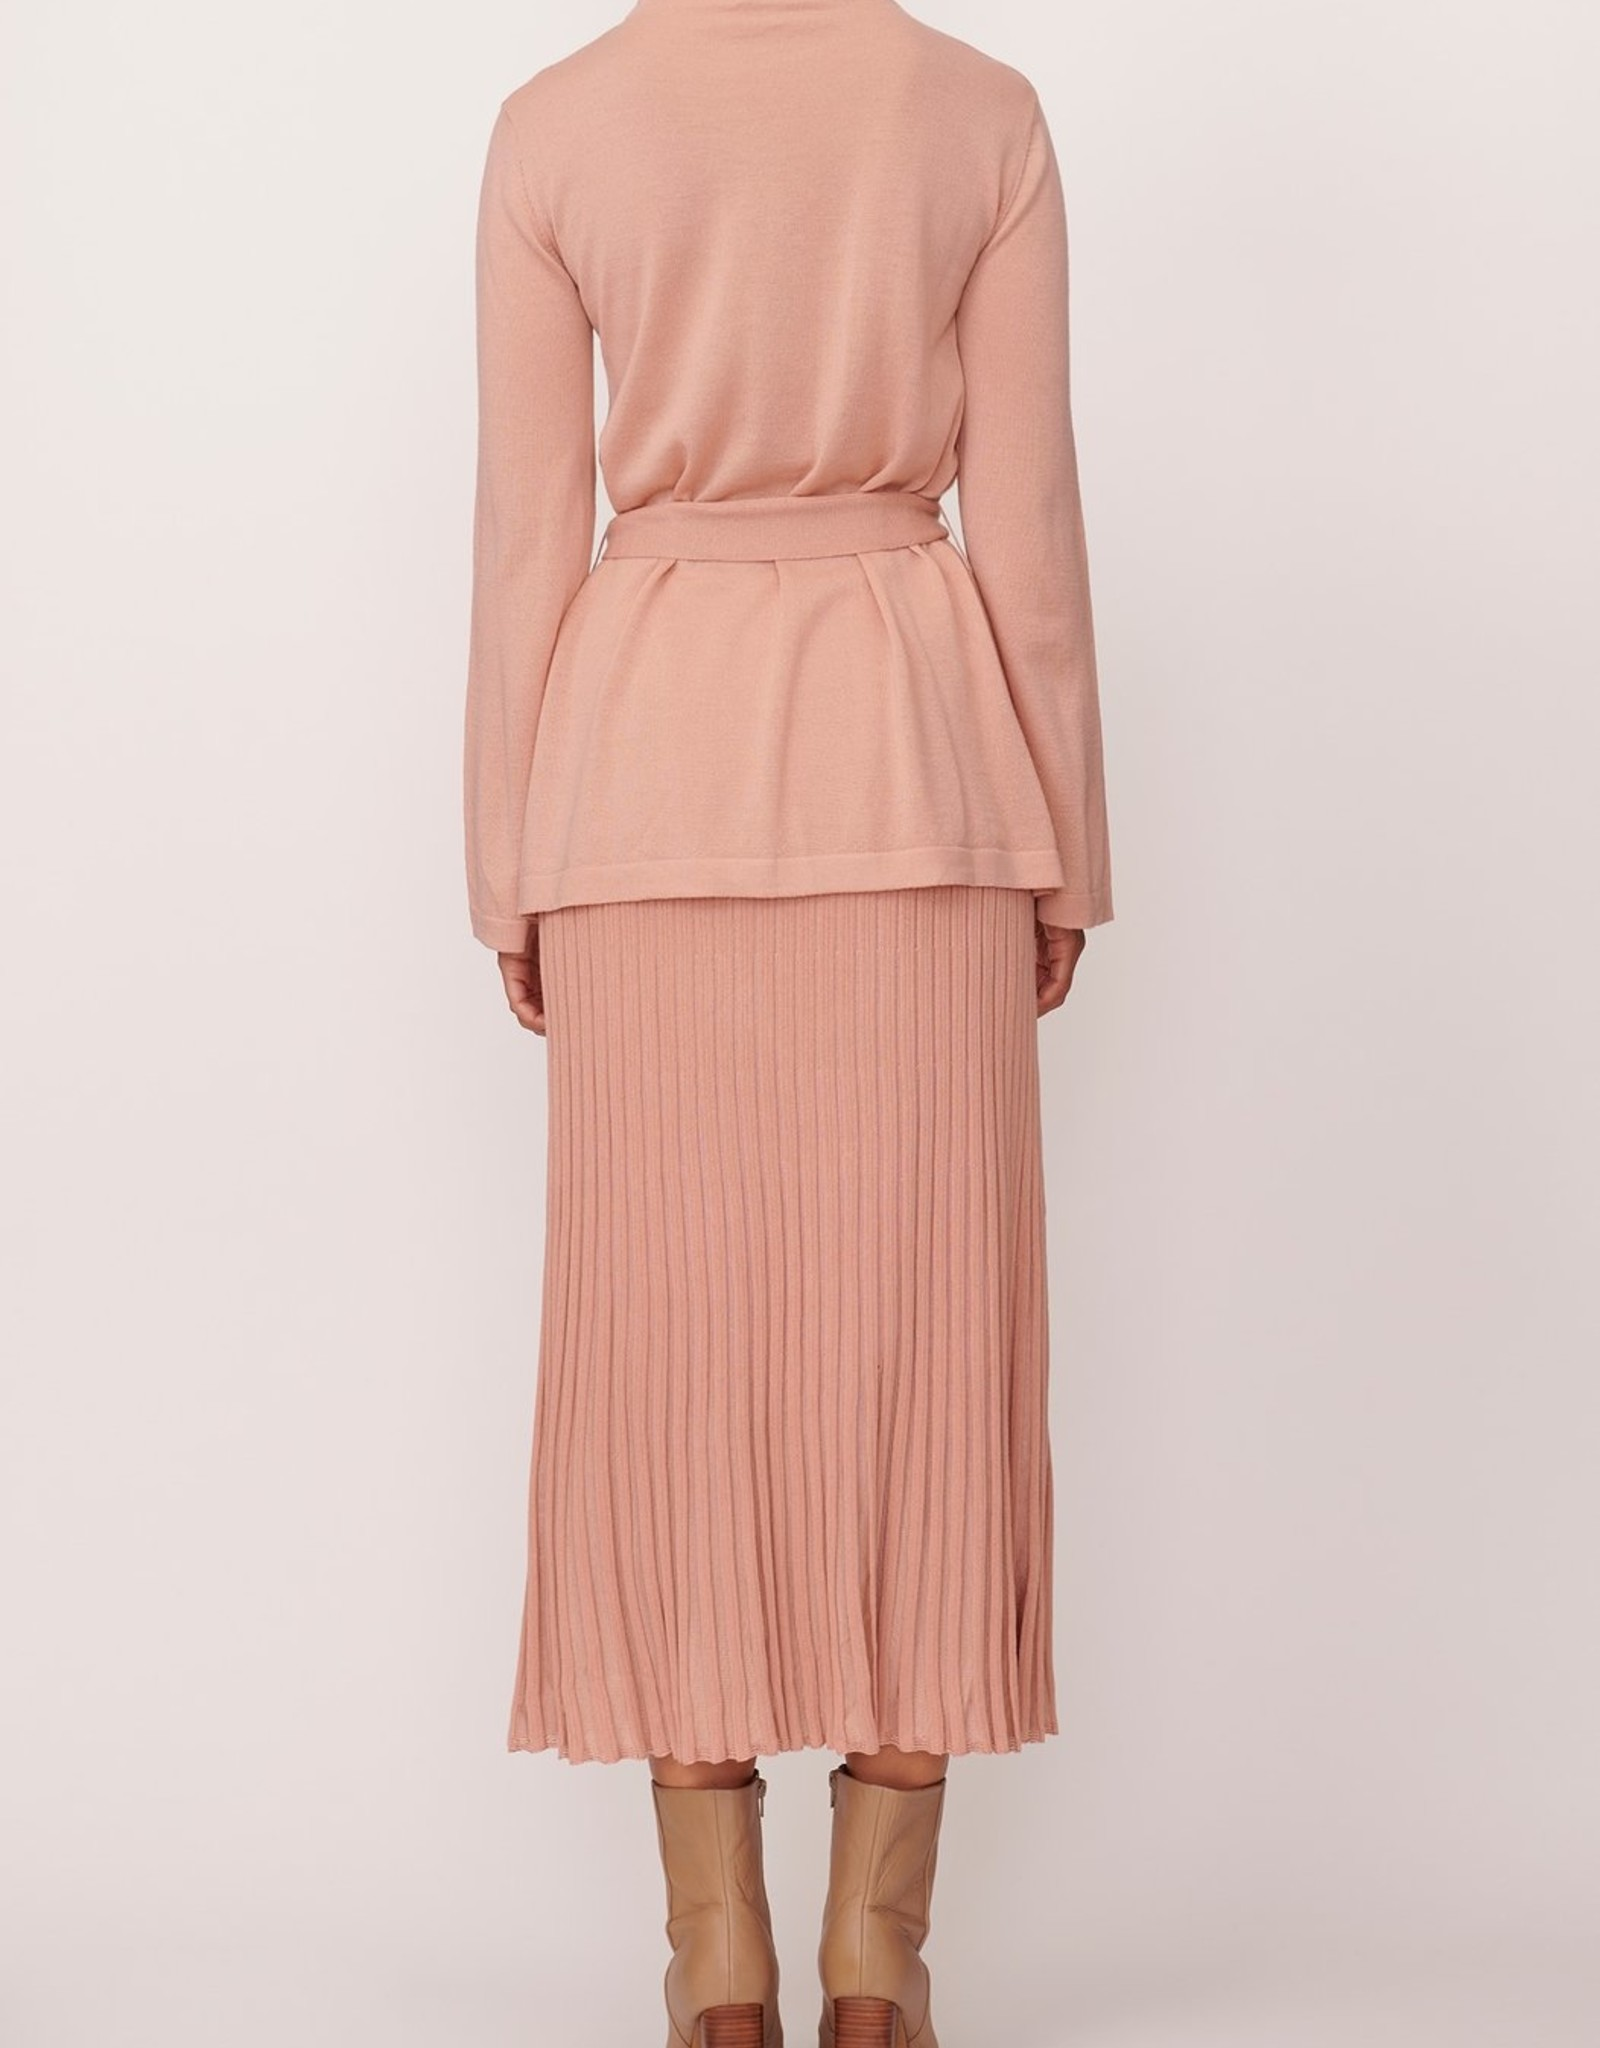 SALE - POL SCOPE RIBBED SKIRT PINK